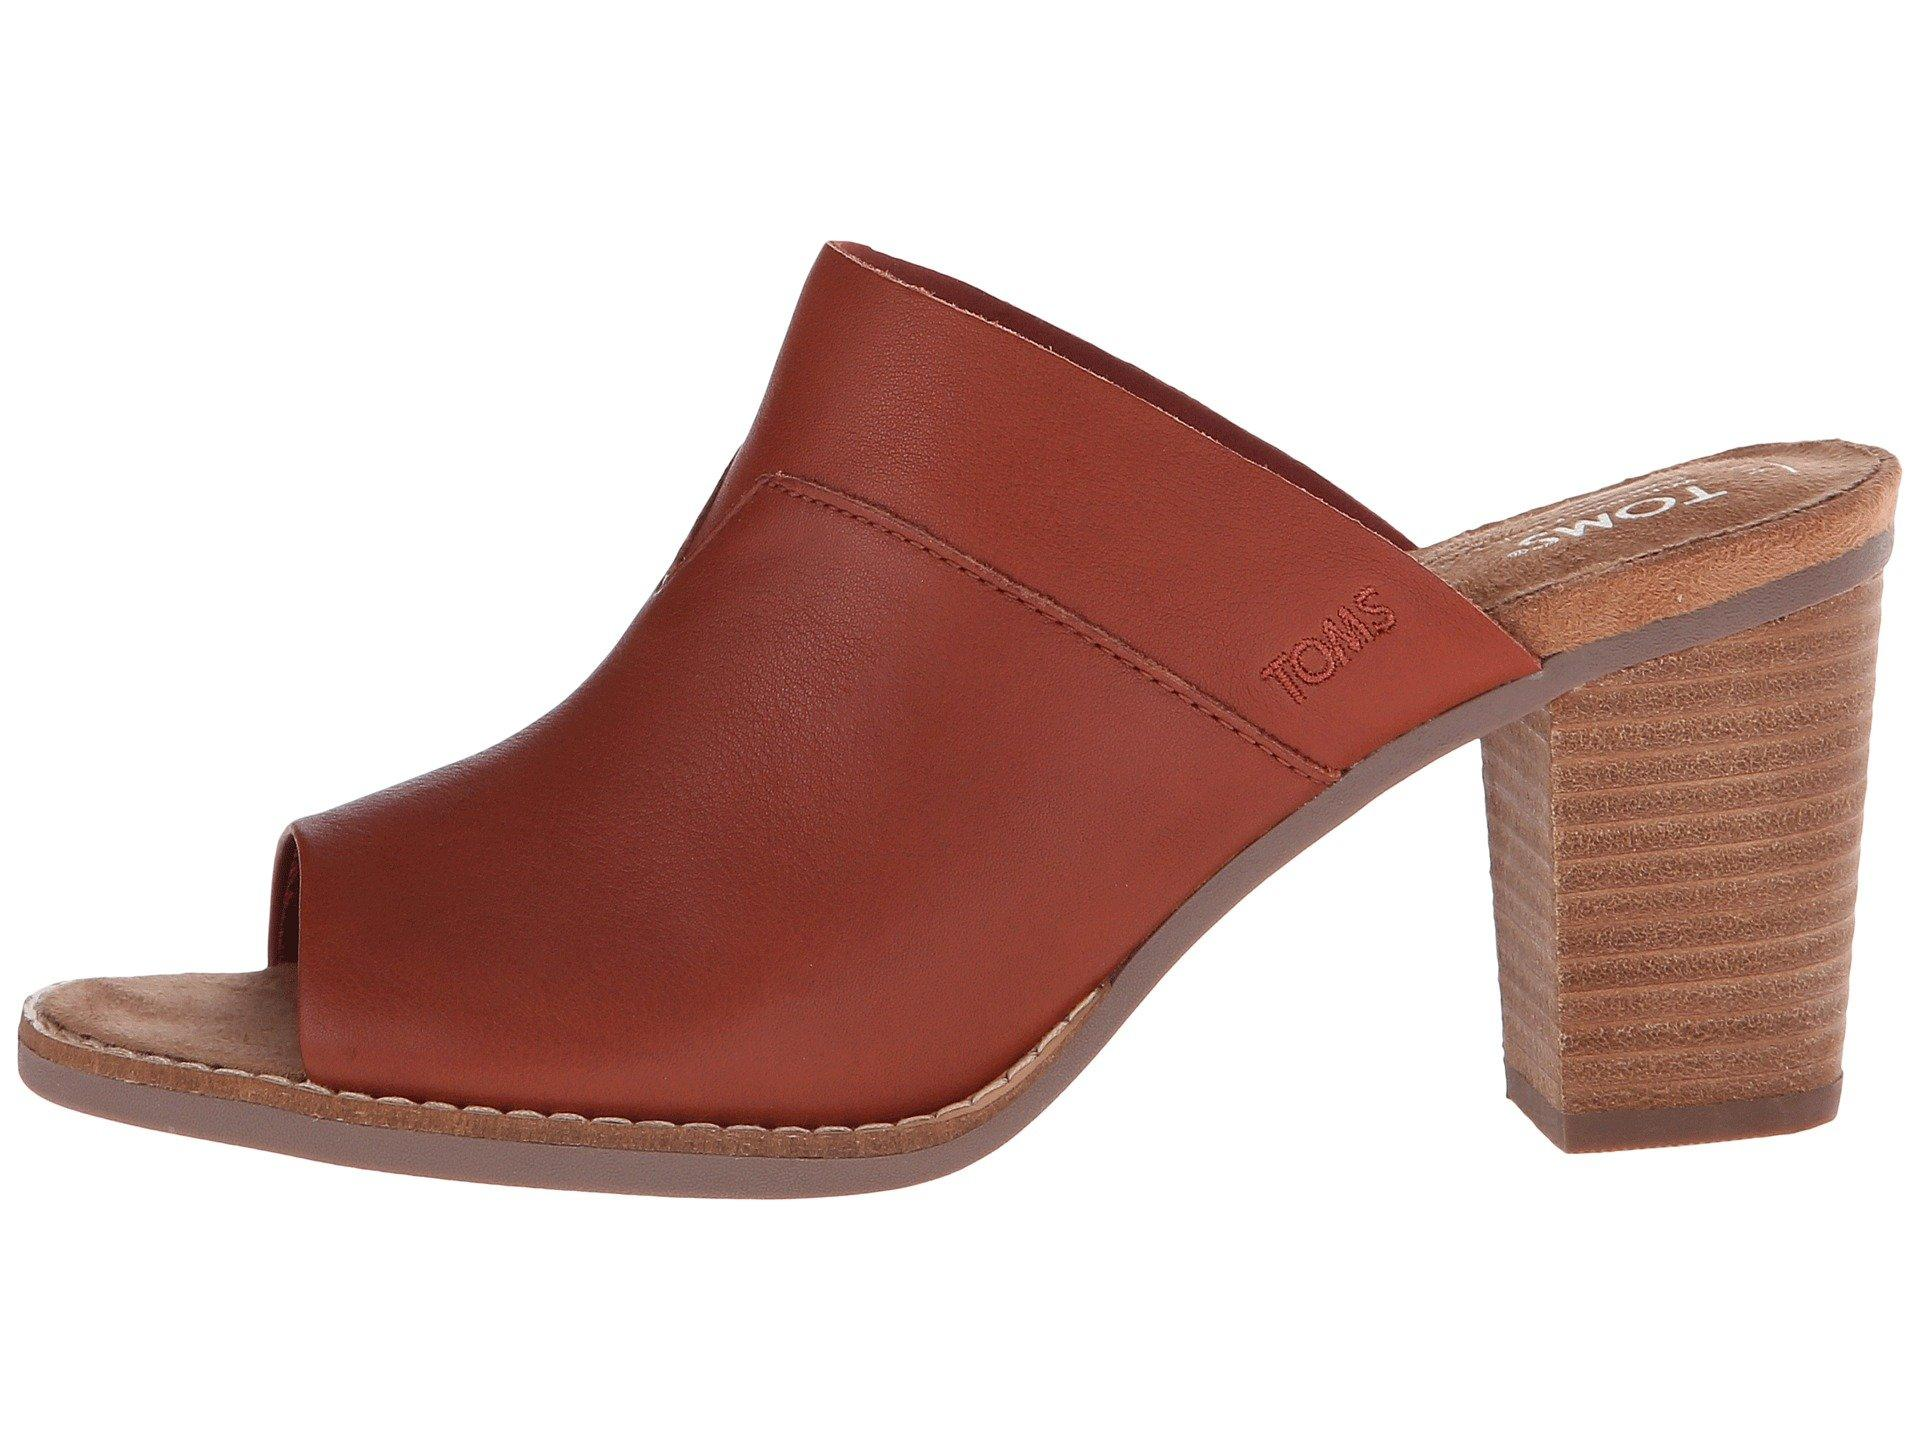 102ae6b22ed Toms  Majorca  Mule Sandal (Women) In Cognac Leather